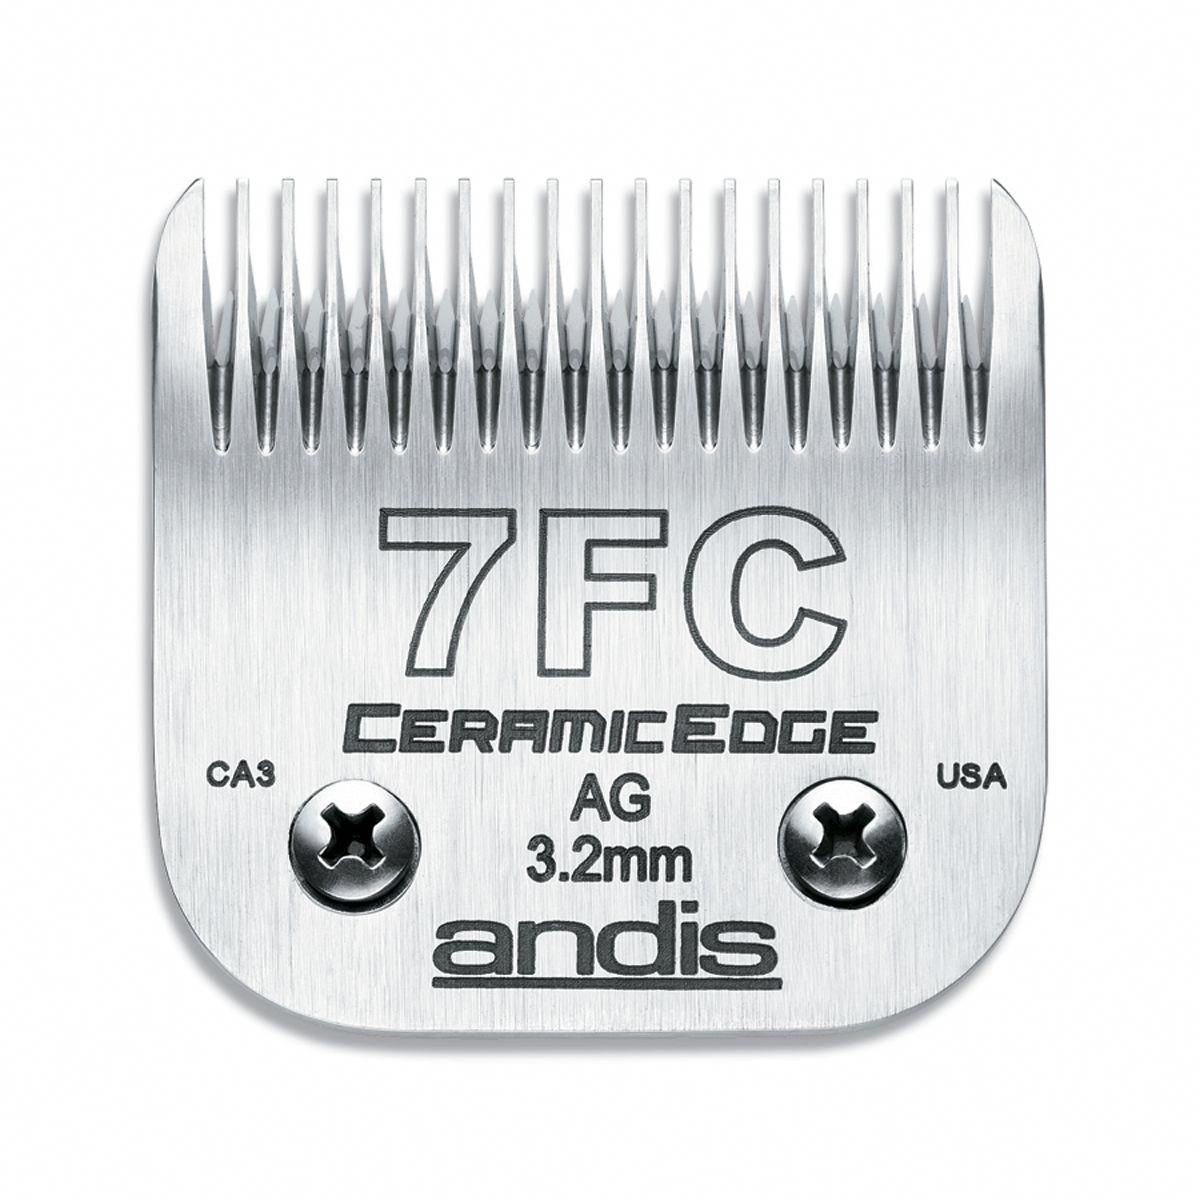 Hair Clippers Under 20 Dollars Hair Clippers Oster Classic 76 Hairarrange Hairvideo Hairclippers Dog Clippers Dog Grooming Tools Dog Grooming Clippers